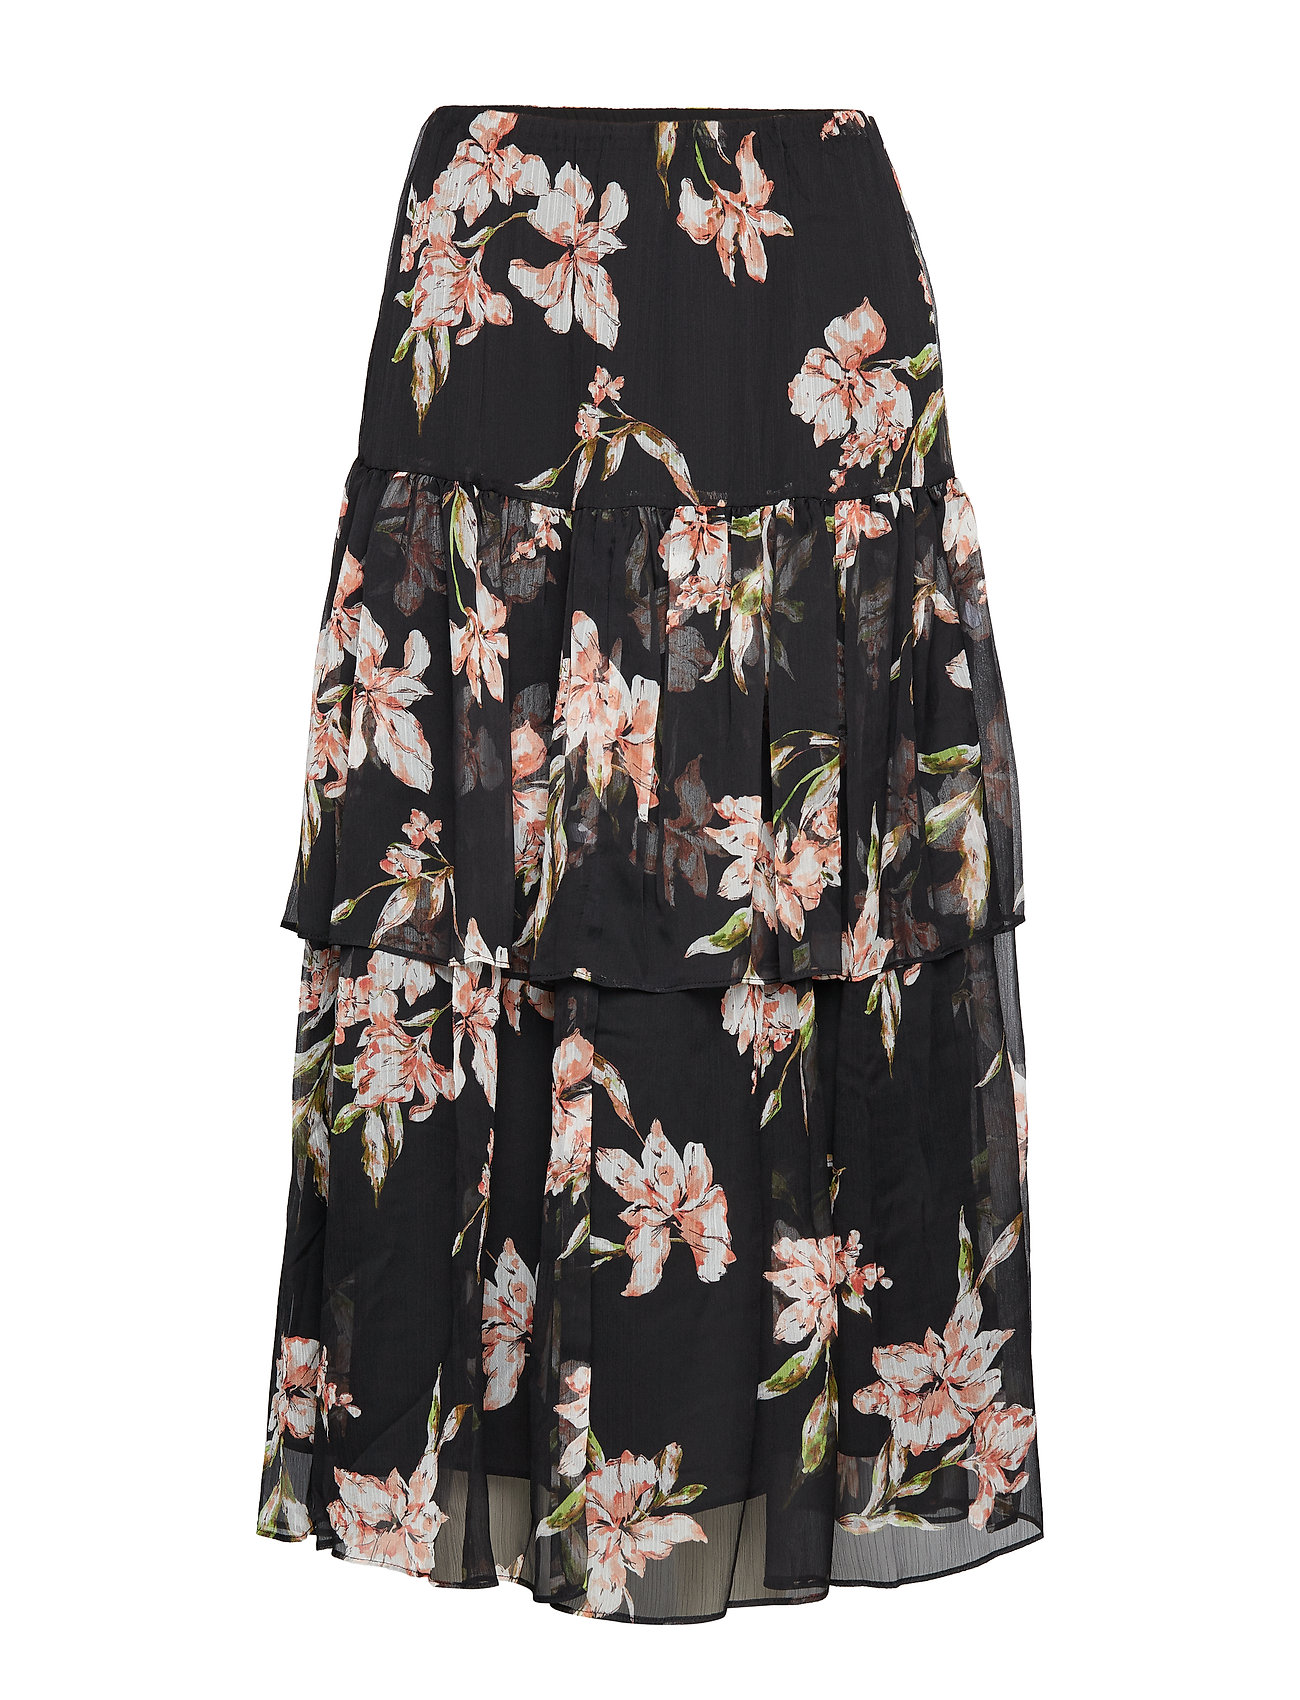 53fd716571 Tiered Georgette Peasant Skirt (Polo Black Multi) (£145) - Lauren ...